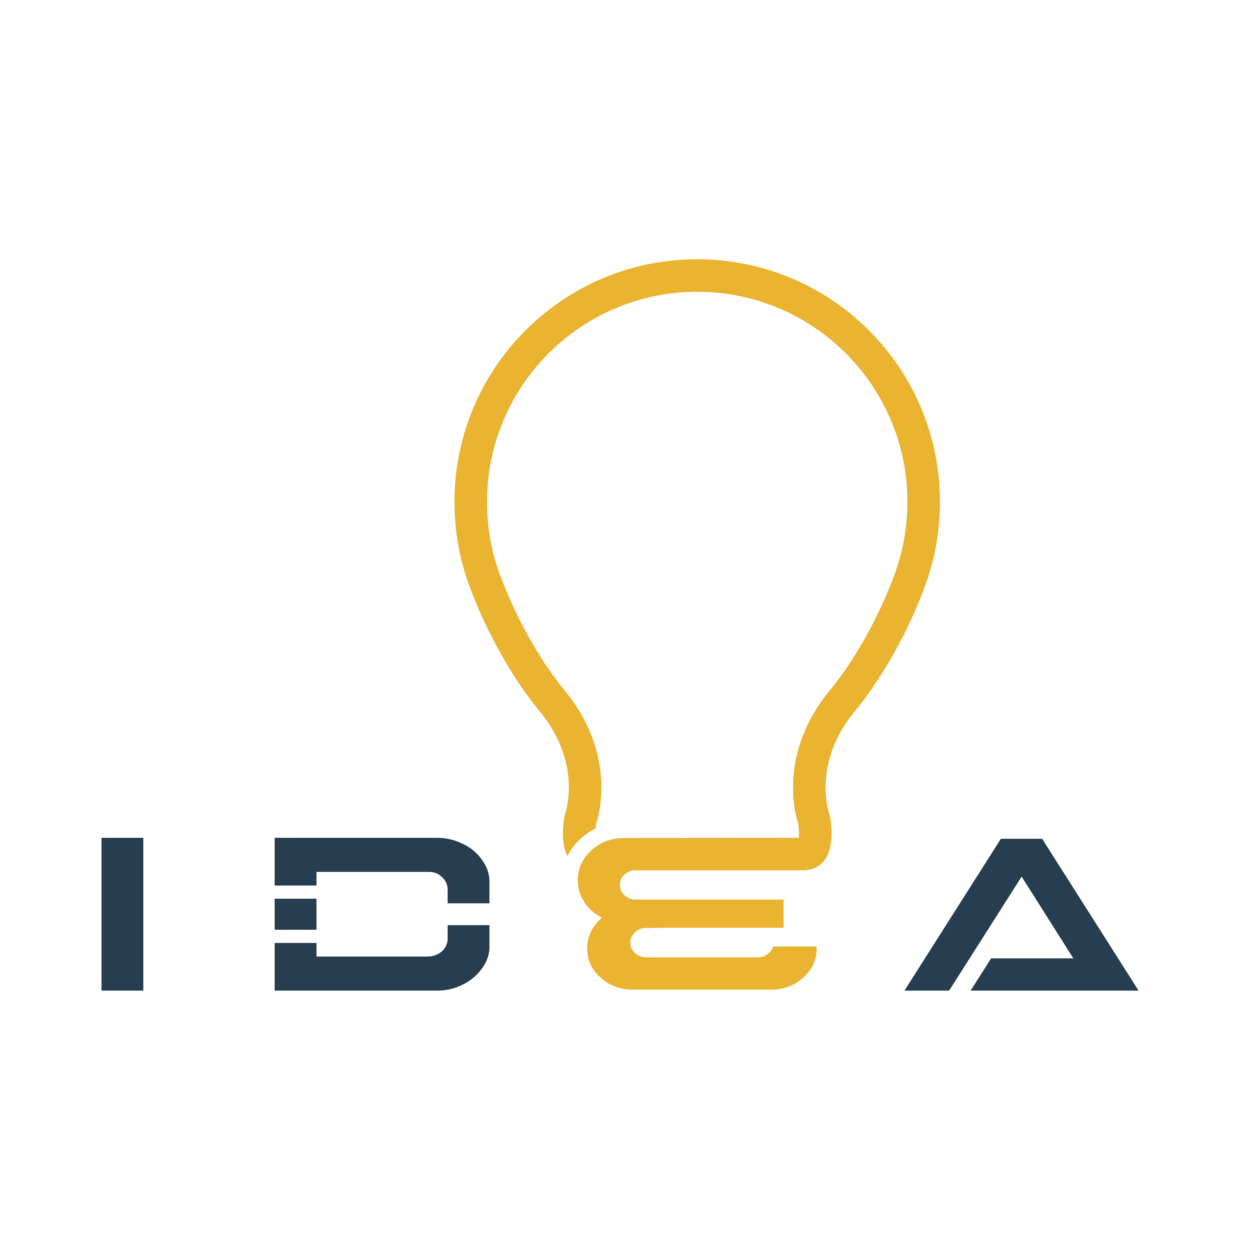 IDEA Product Design